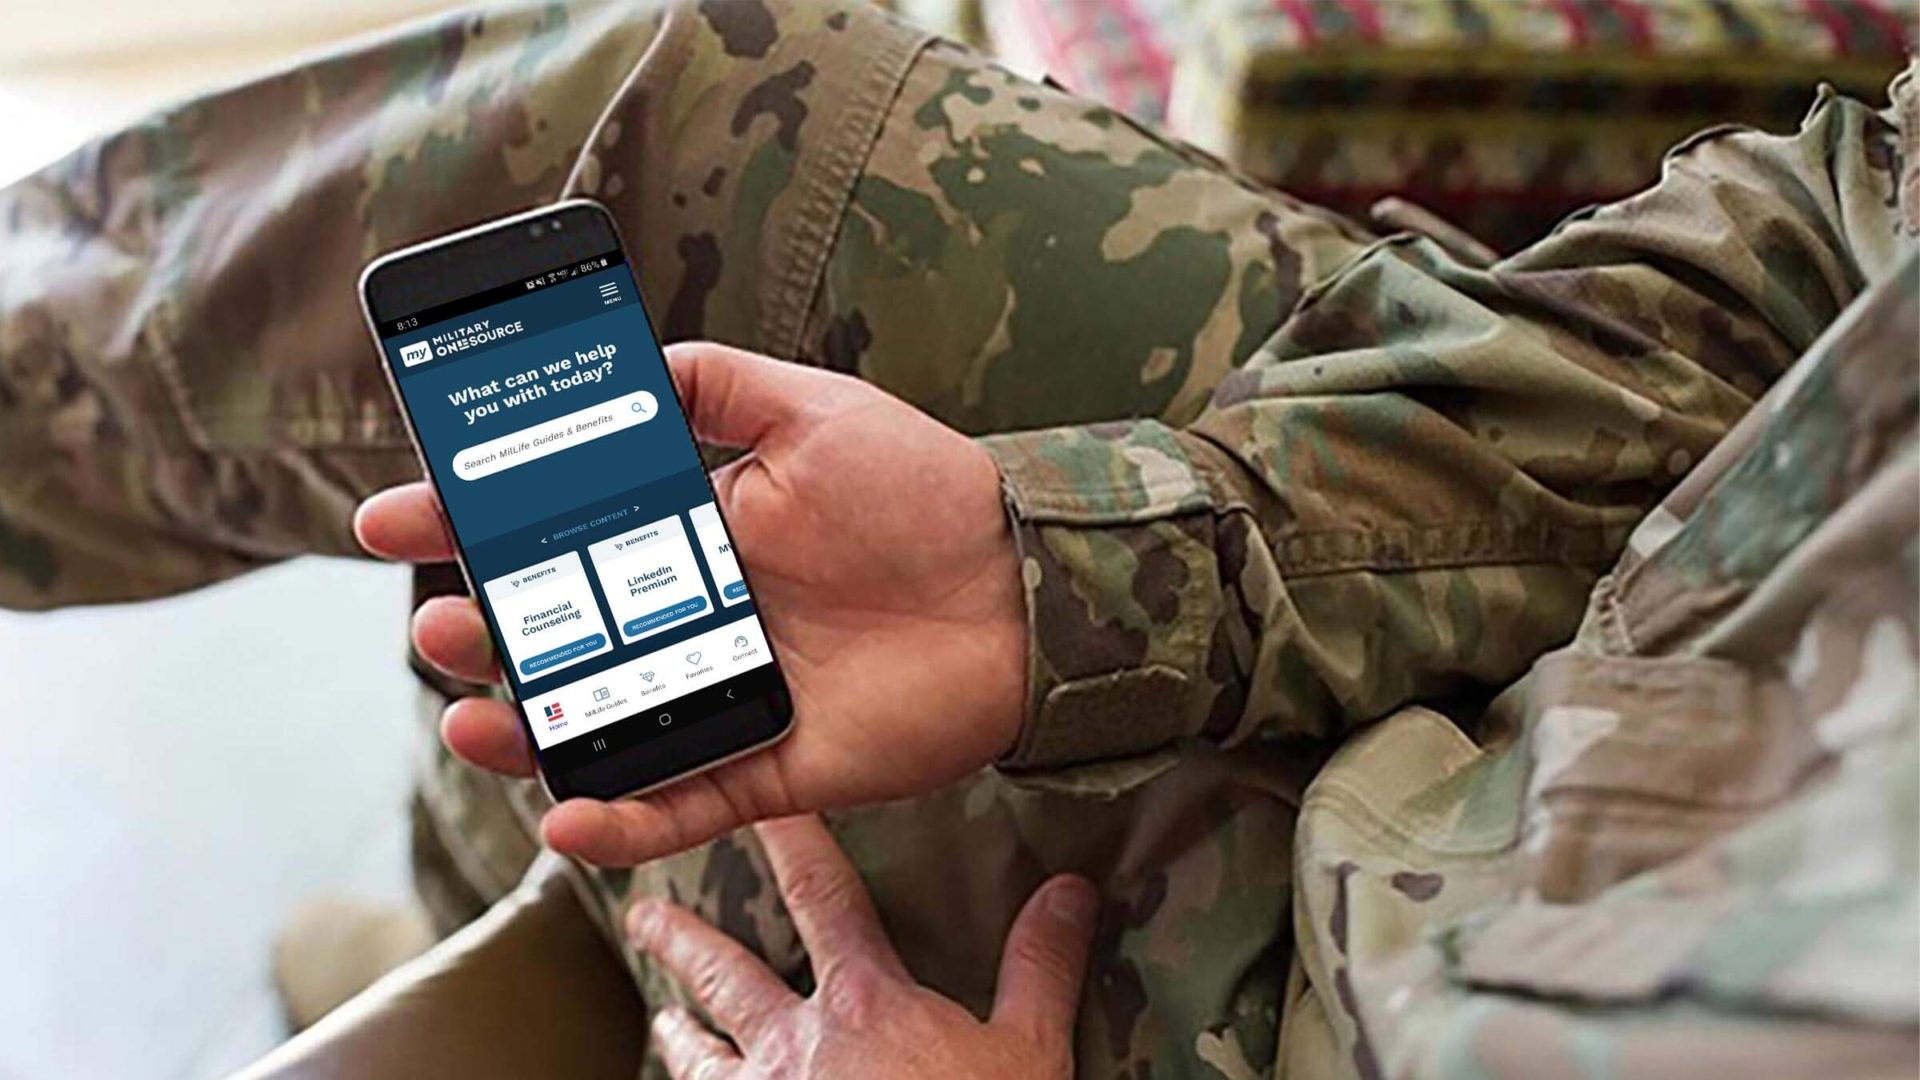 Service member showing Military OneSource mobile